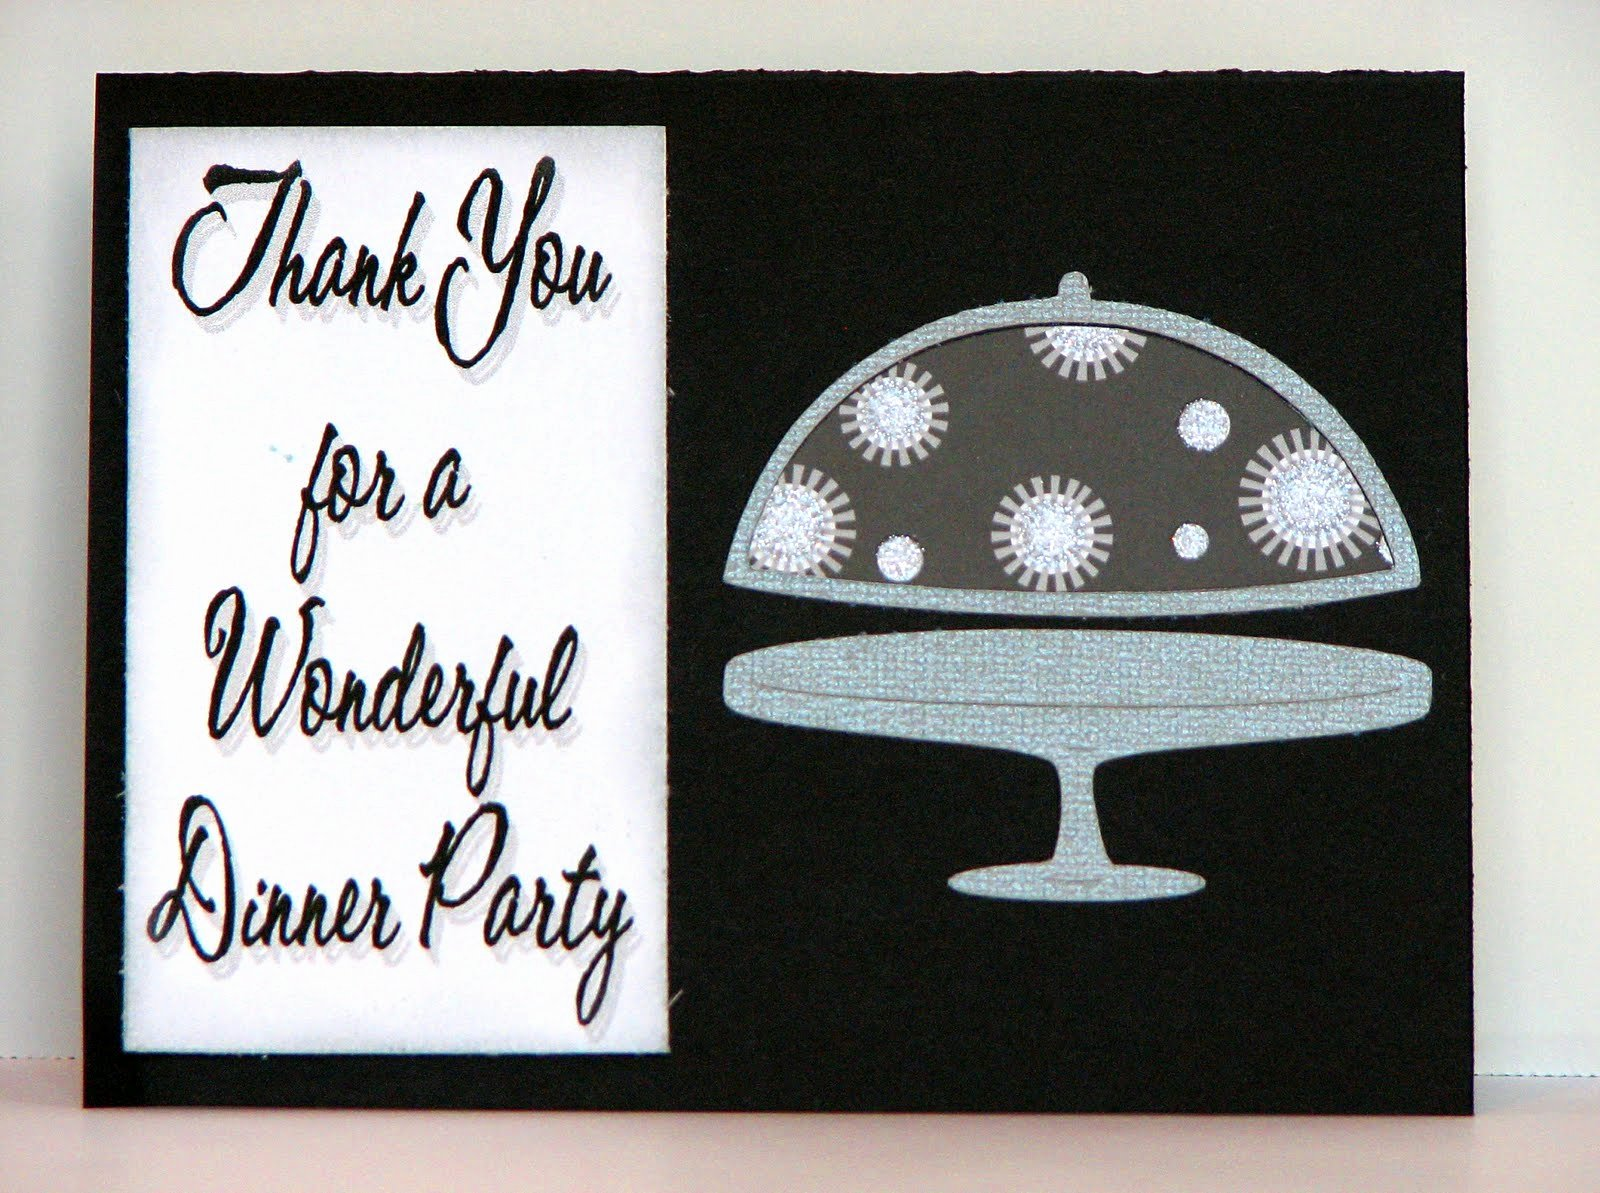 Dinner Party Thank You Notes Lovely the Cricut Obsession Dinner Party Thank You